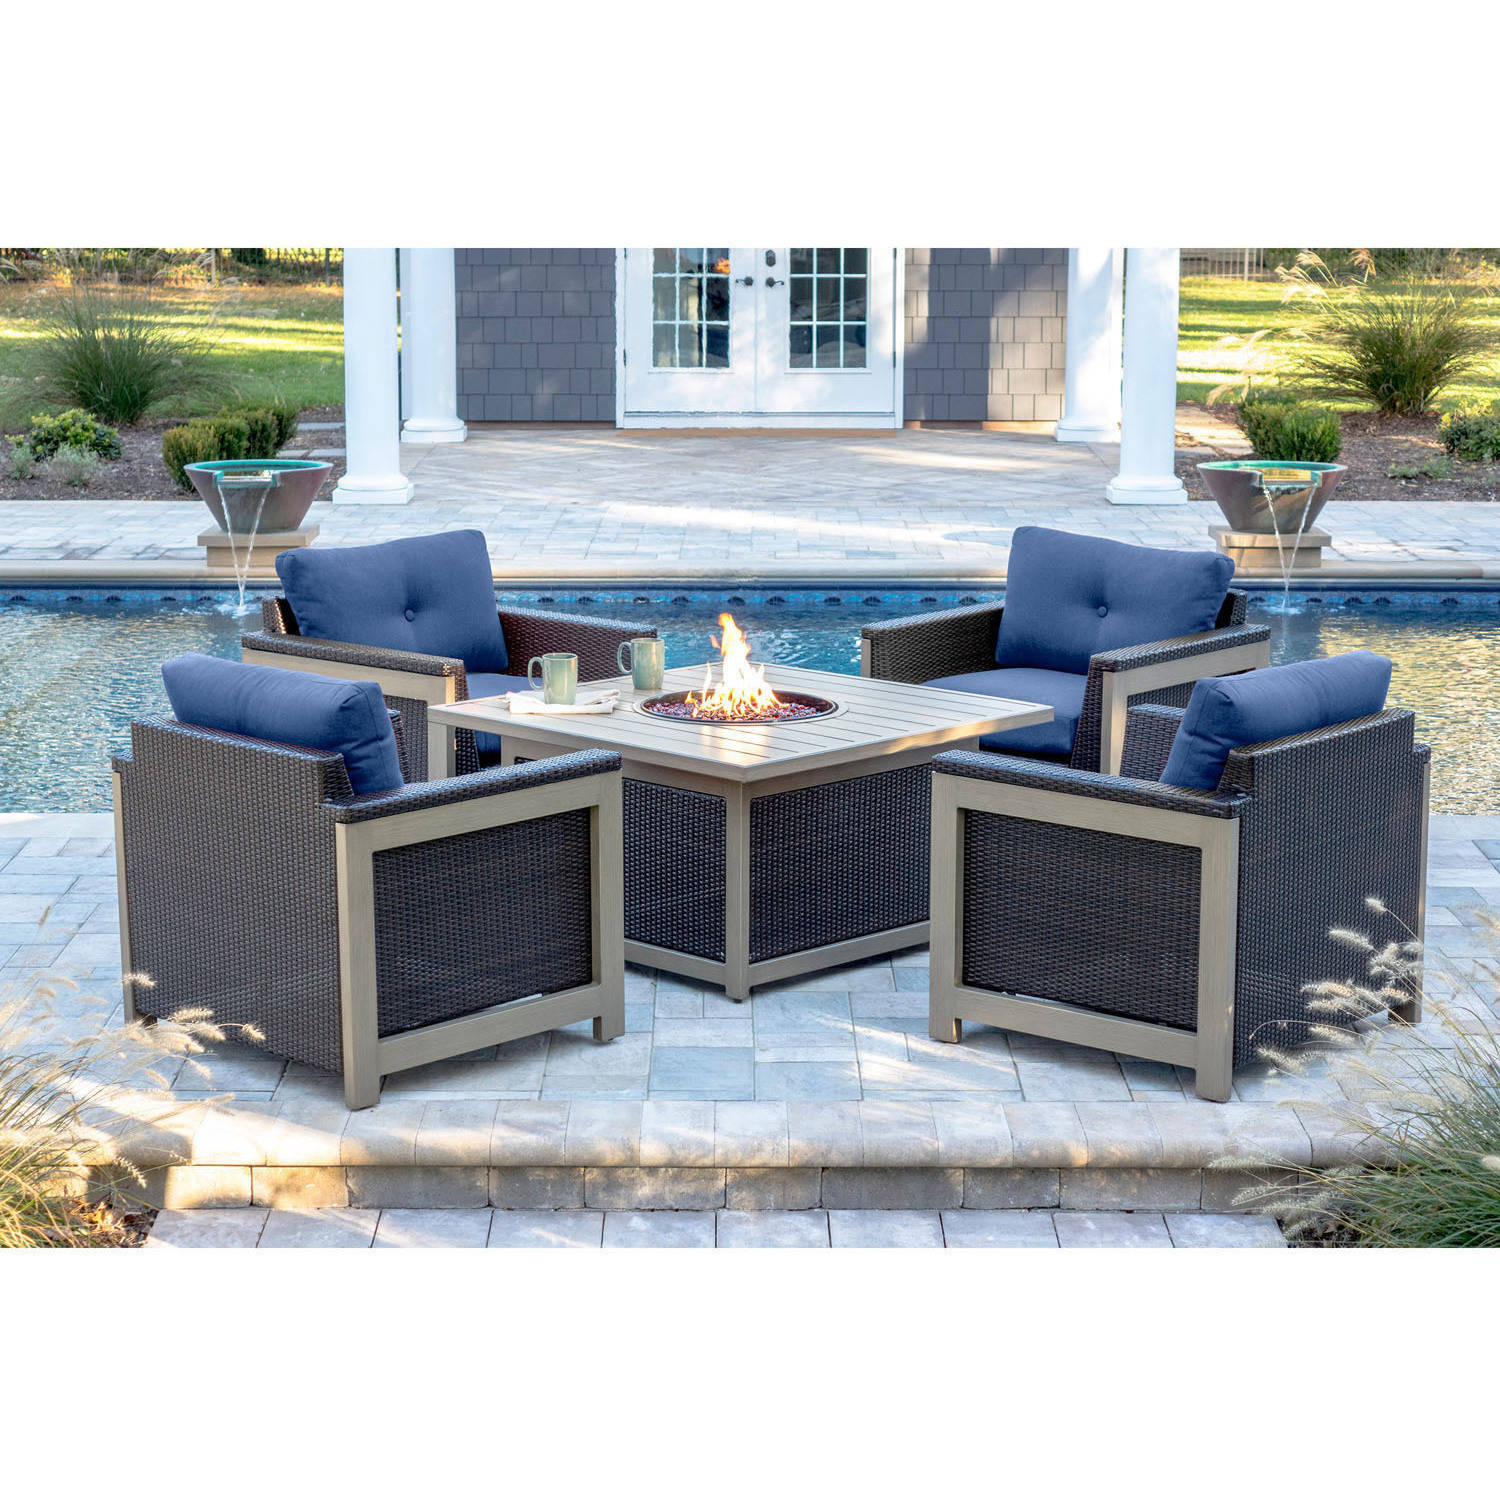 Hanover Outdoor Montana 5-Piece Woven Firepit Chat Set with Slate Top by Hanover Outdoor